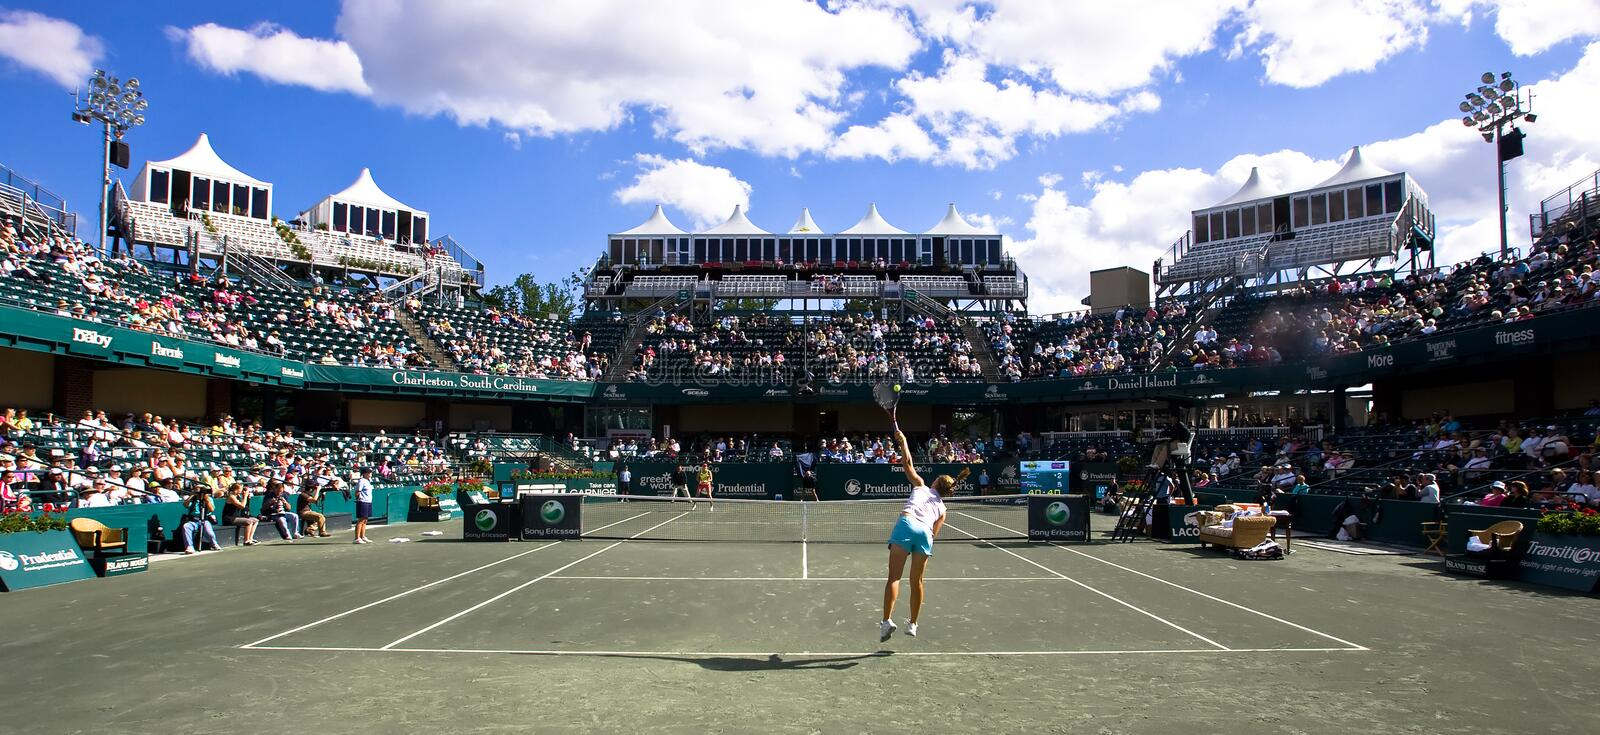 Download Sony Ericsson WTA Tour Family Cirlce Cup Apr 16 Editorial Stock Image - Image: 9010859